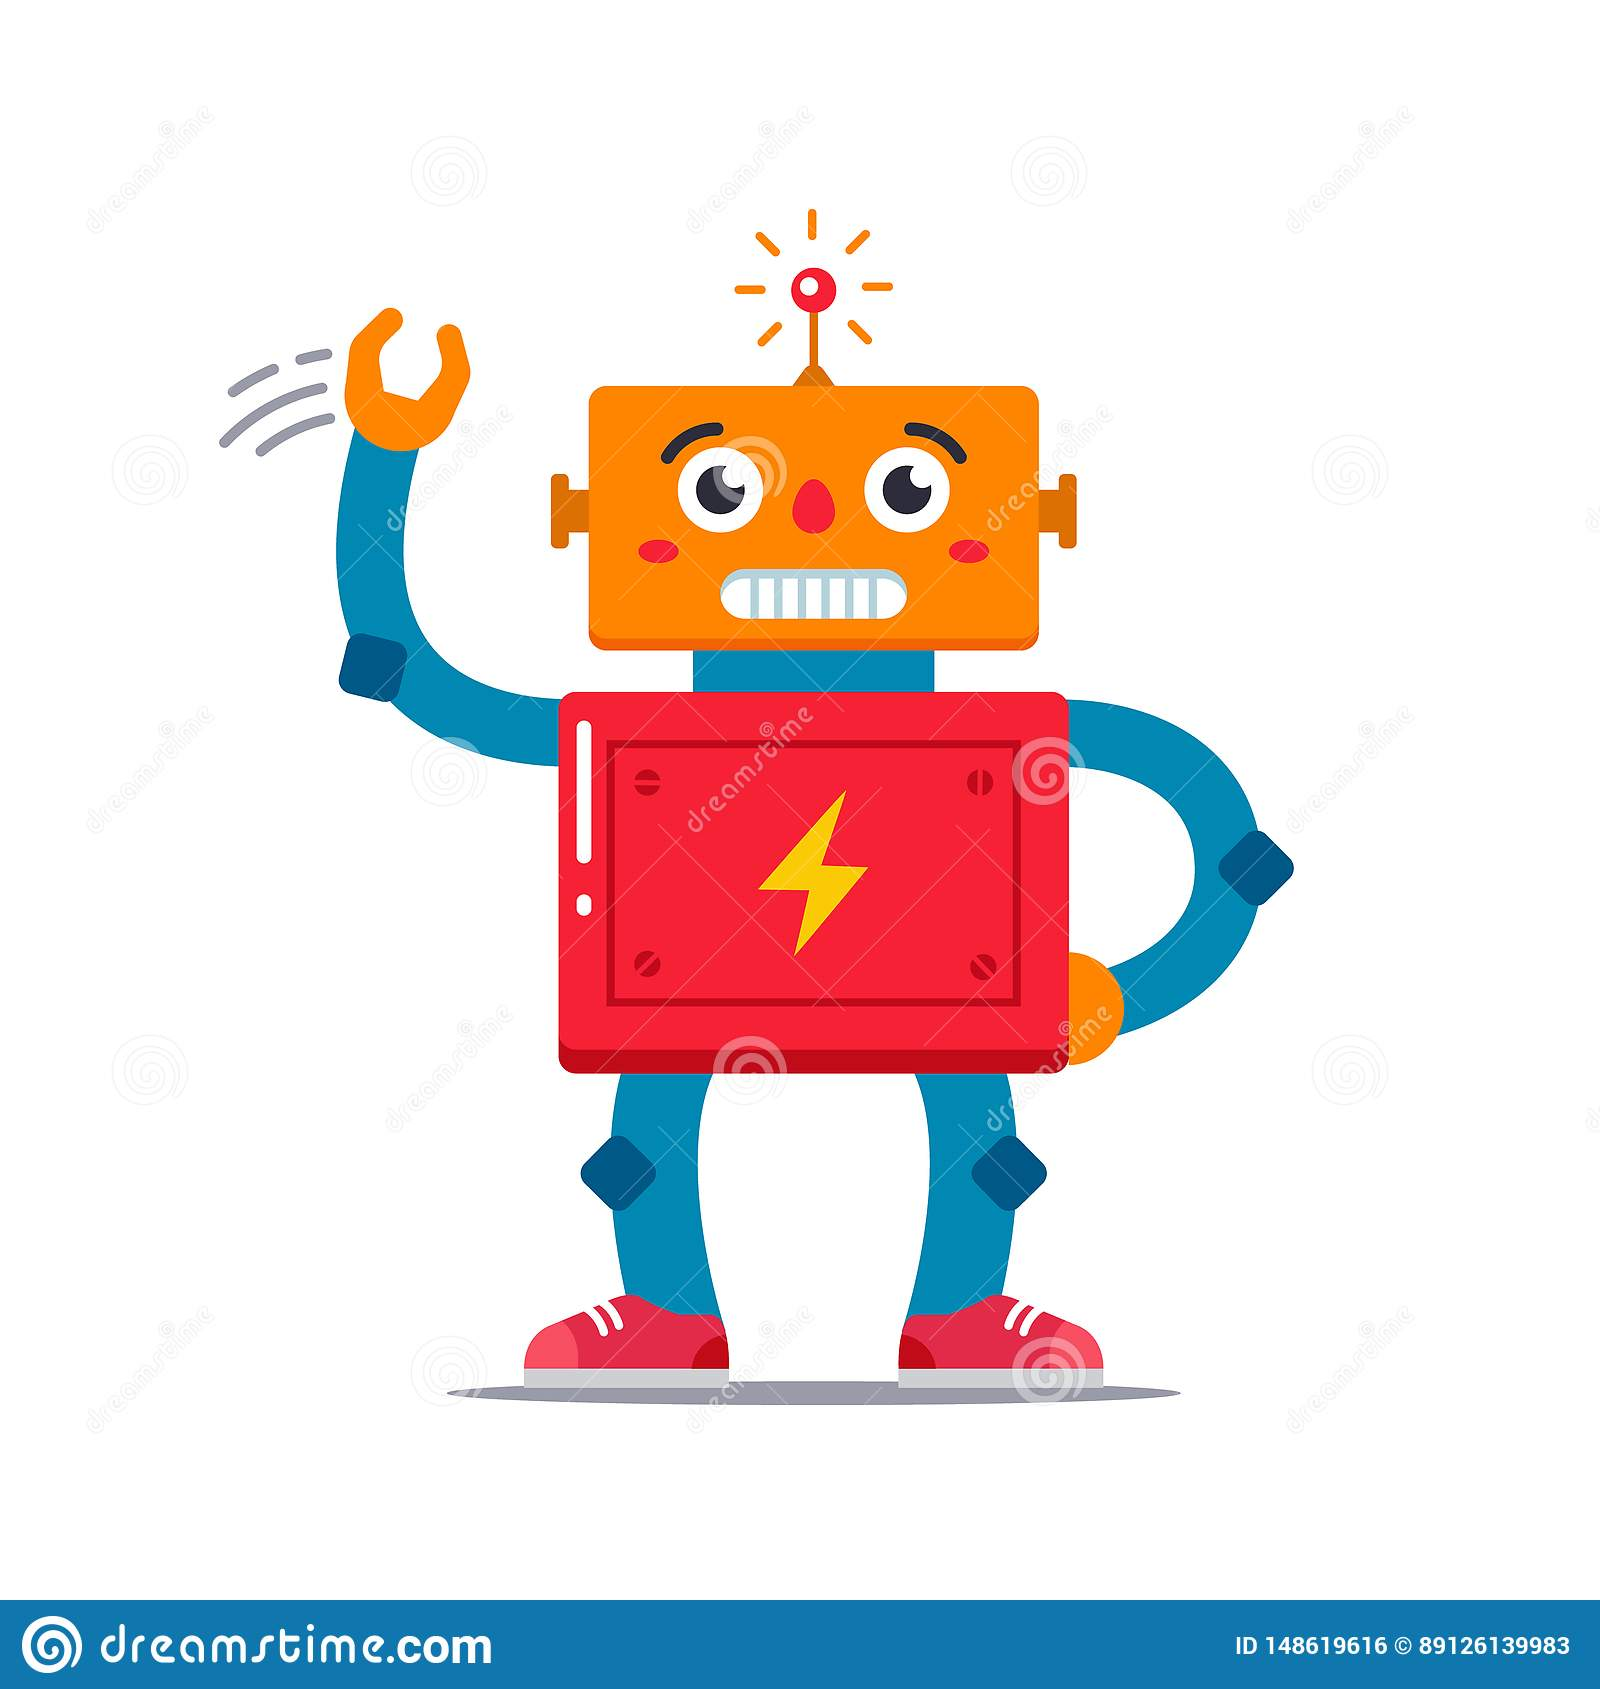 Vector image of a cute robot who waves